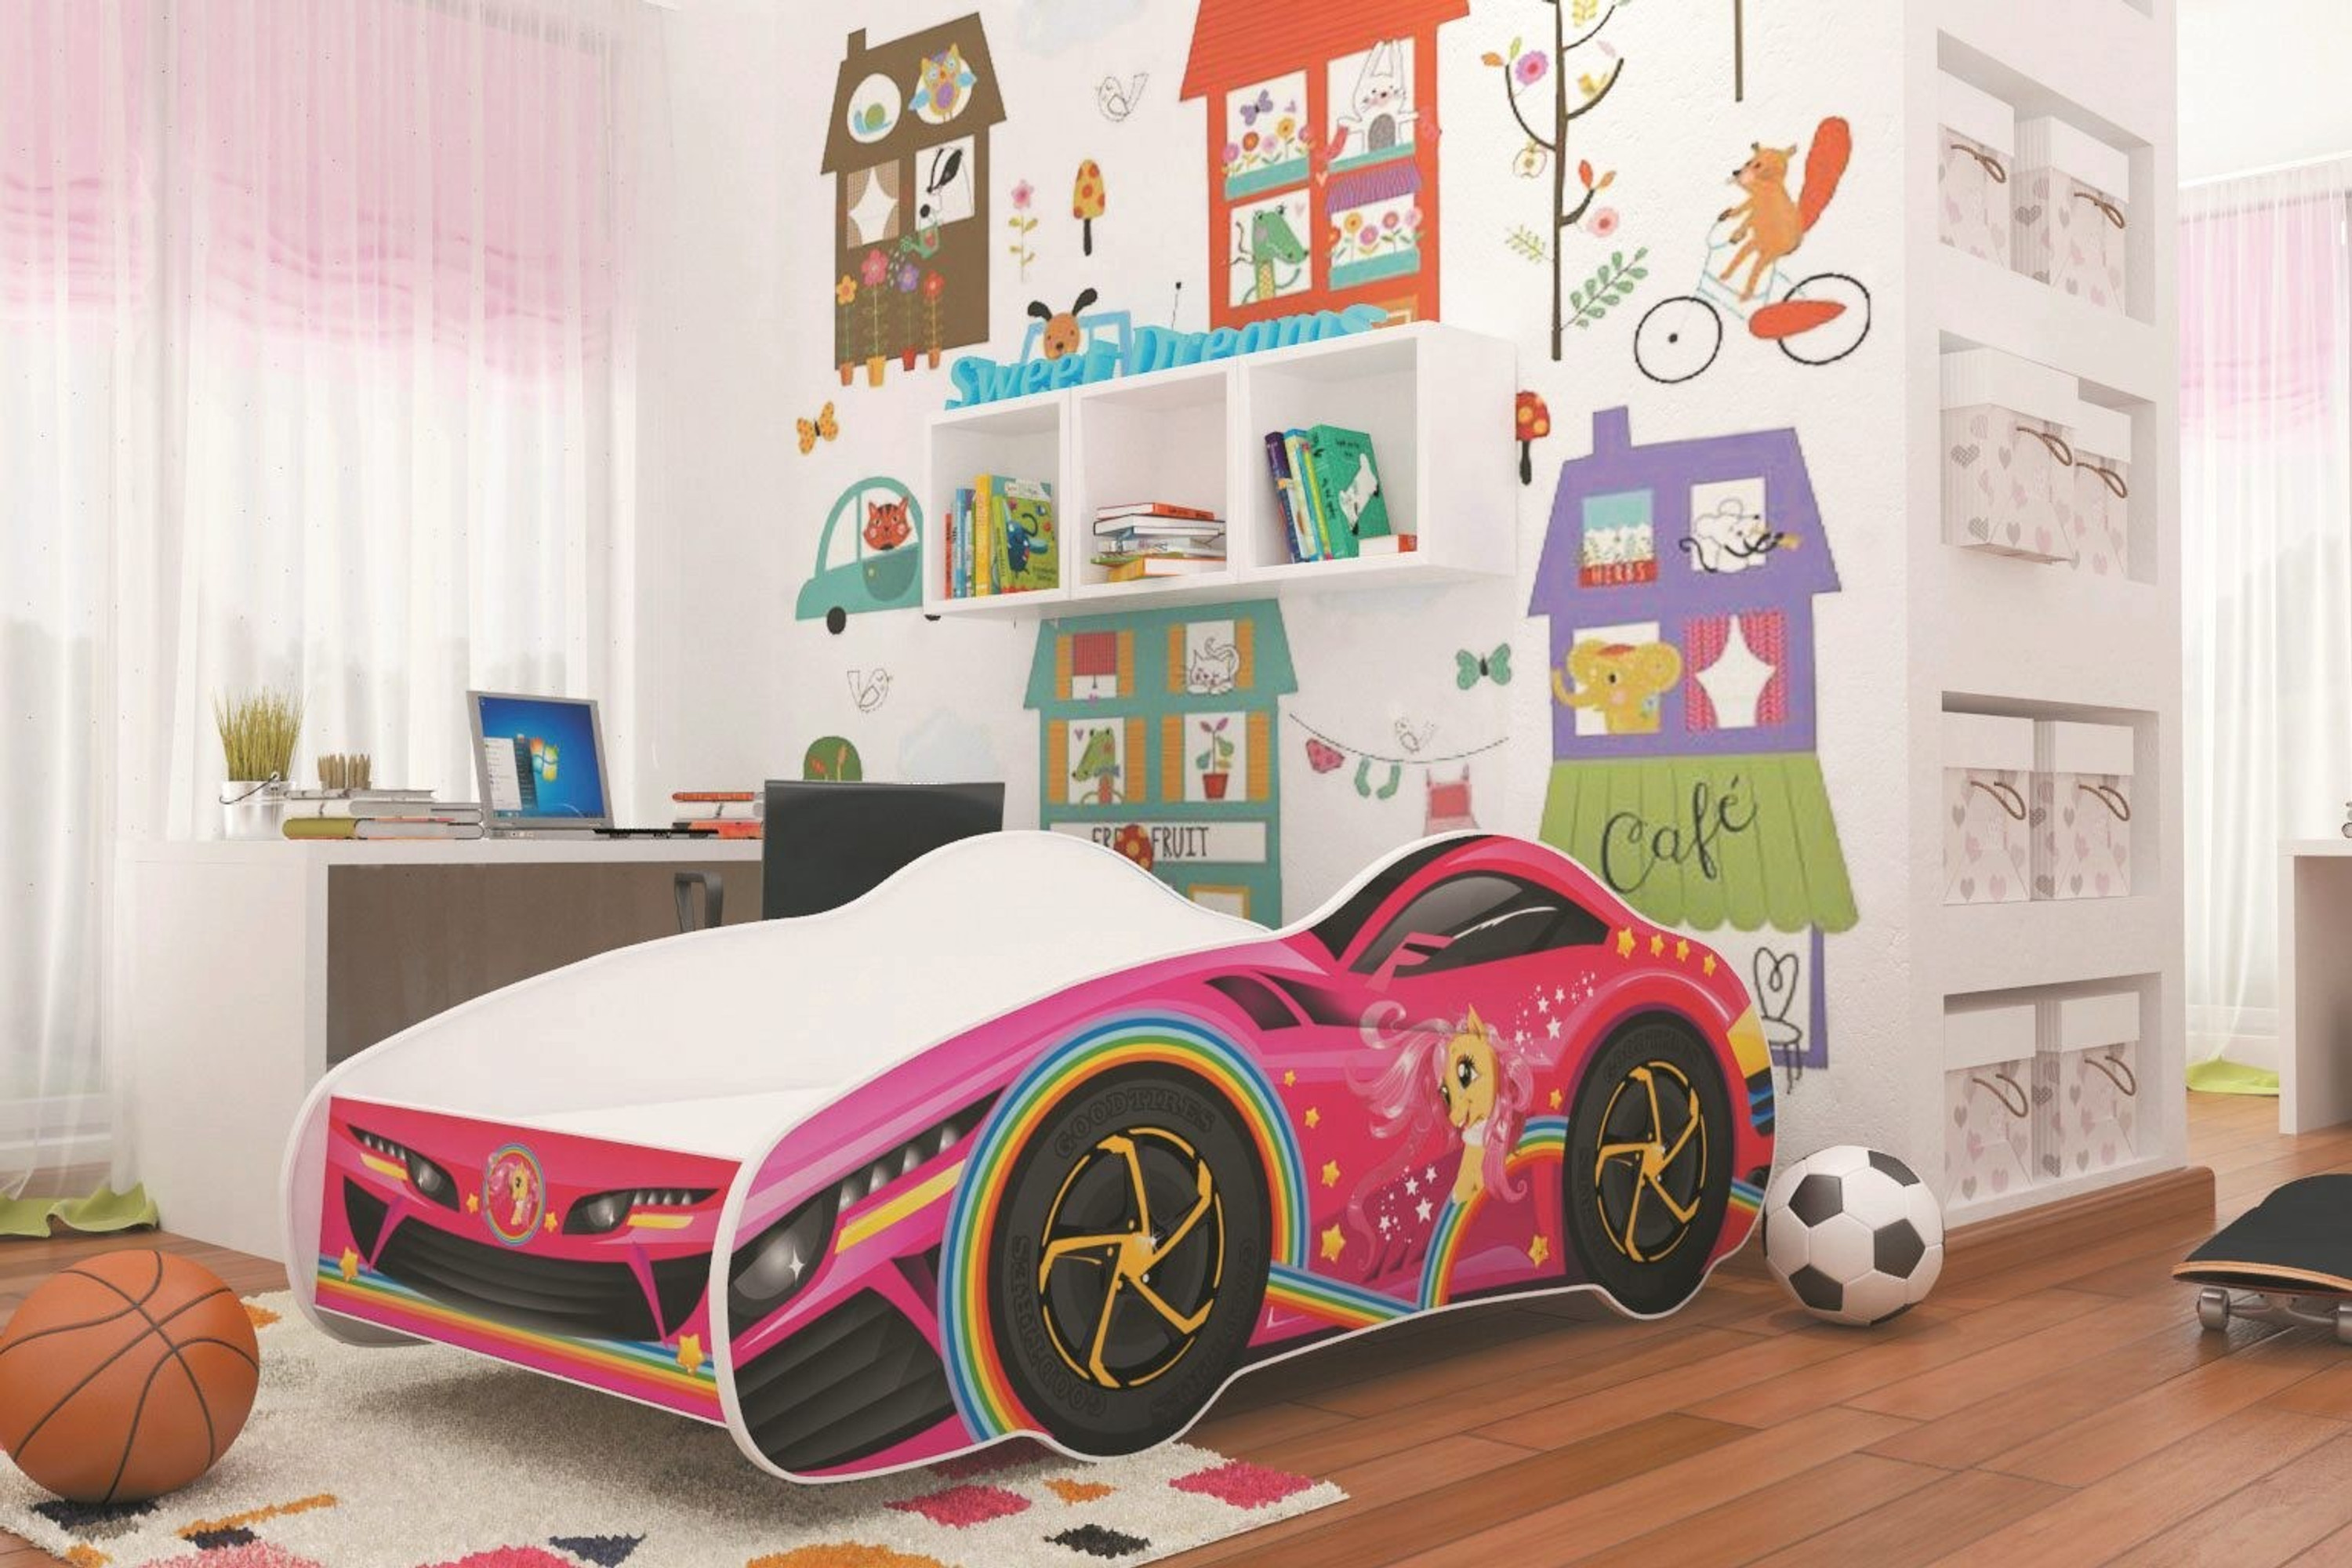 autobett car kids car 70x140 cm inkl lattenrost u matratze m bel baby kinderzimmer kinder. Black Bedroom Furniture Sets. Home Design Ideas